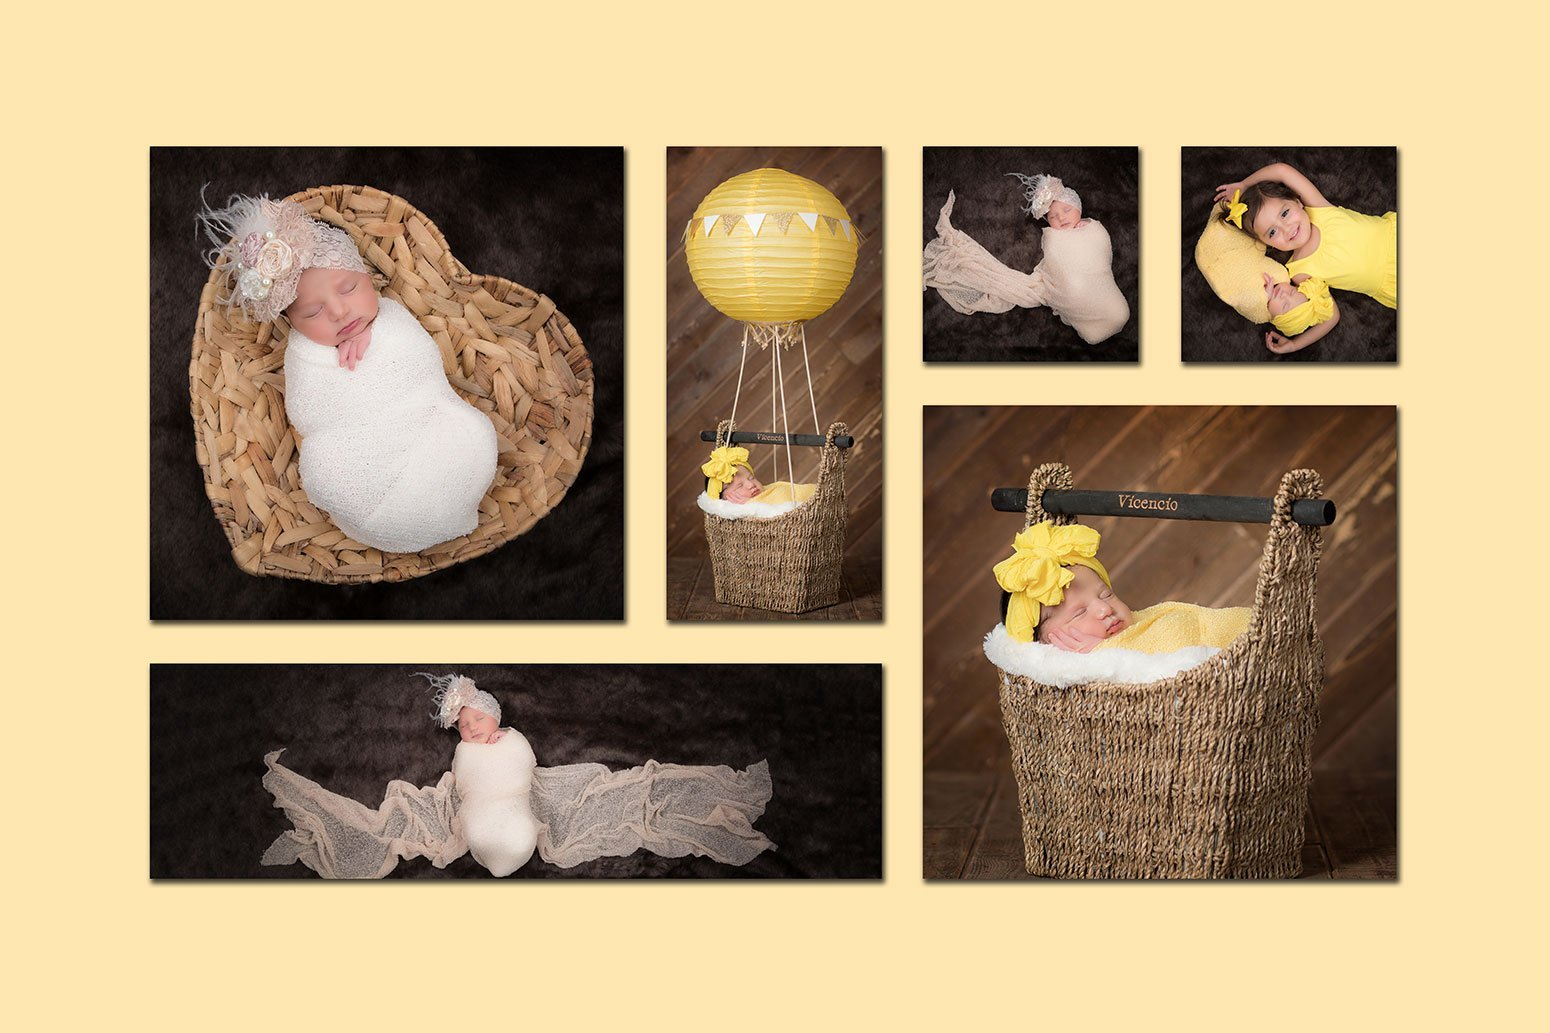 Newborn baby wall collage product from Portrait Xpressions